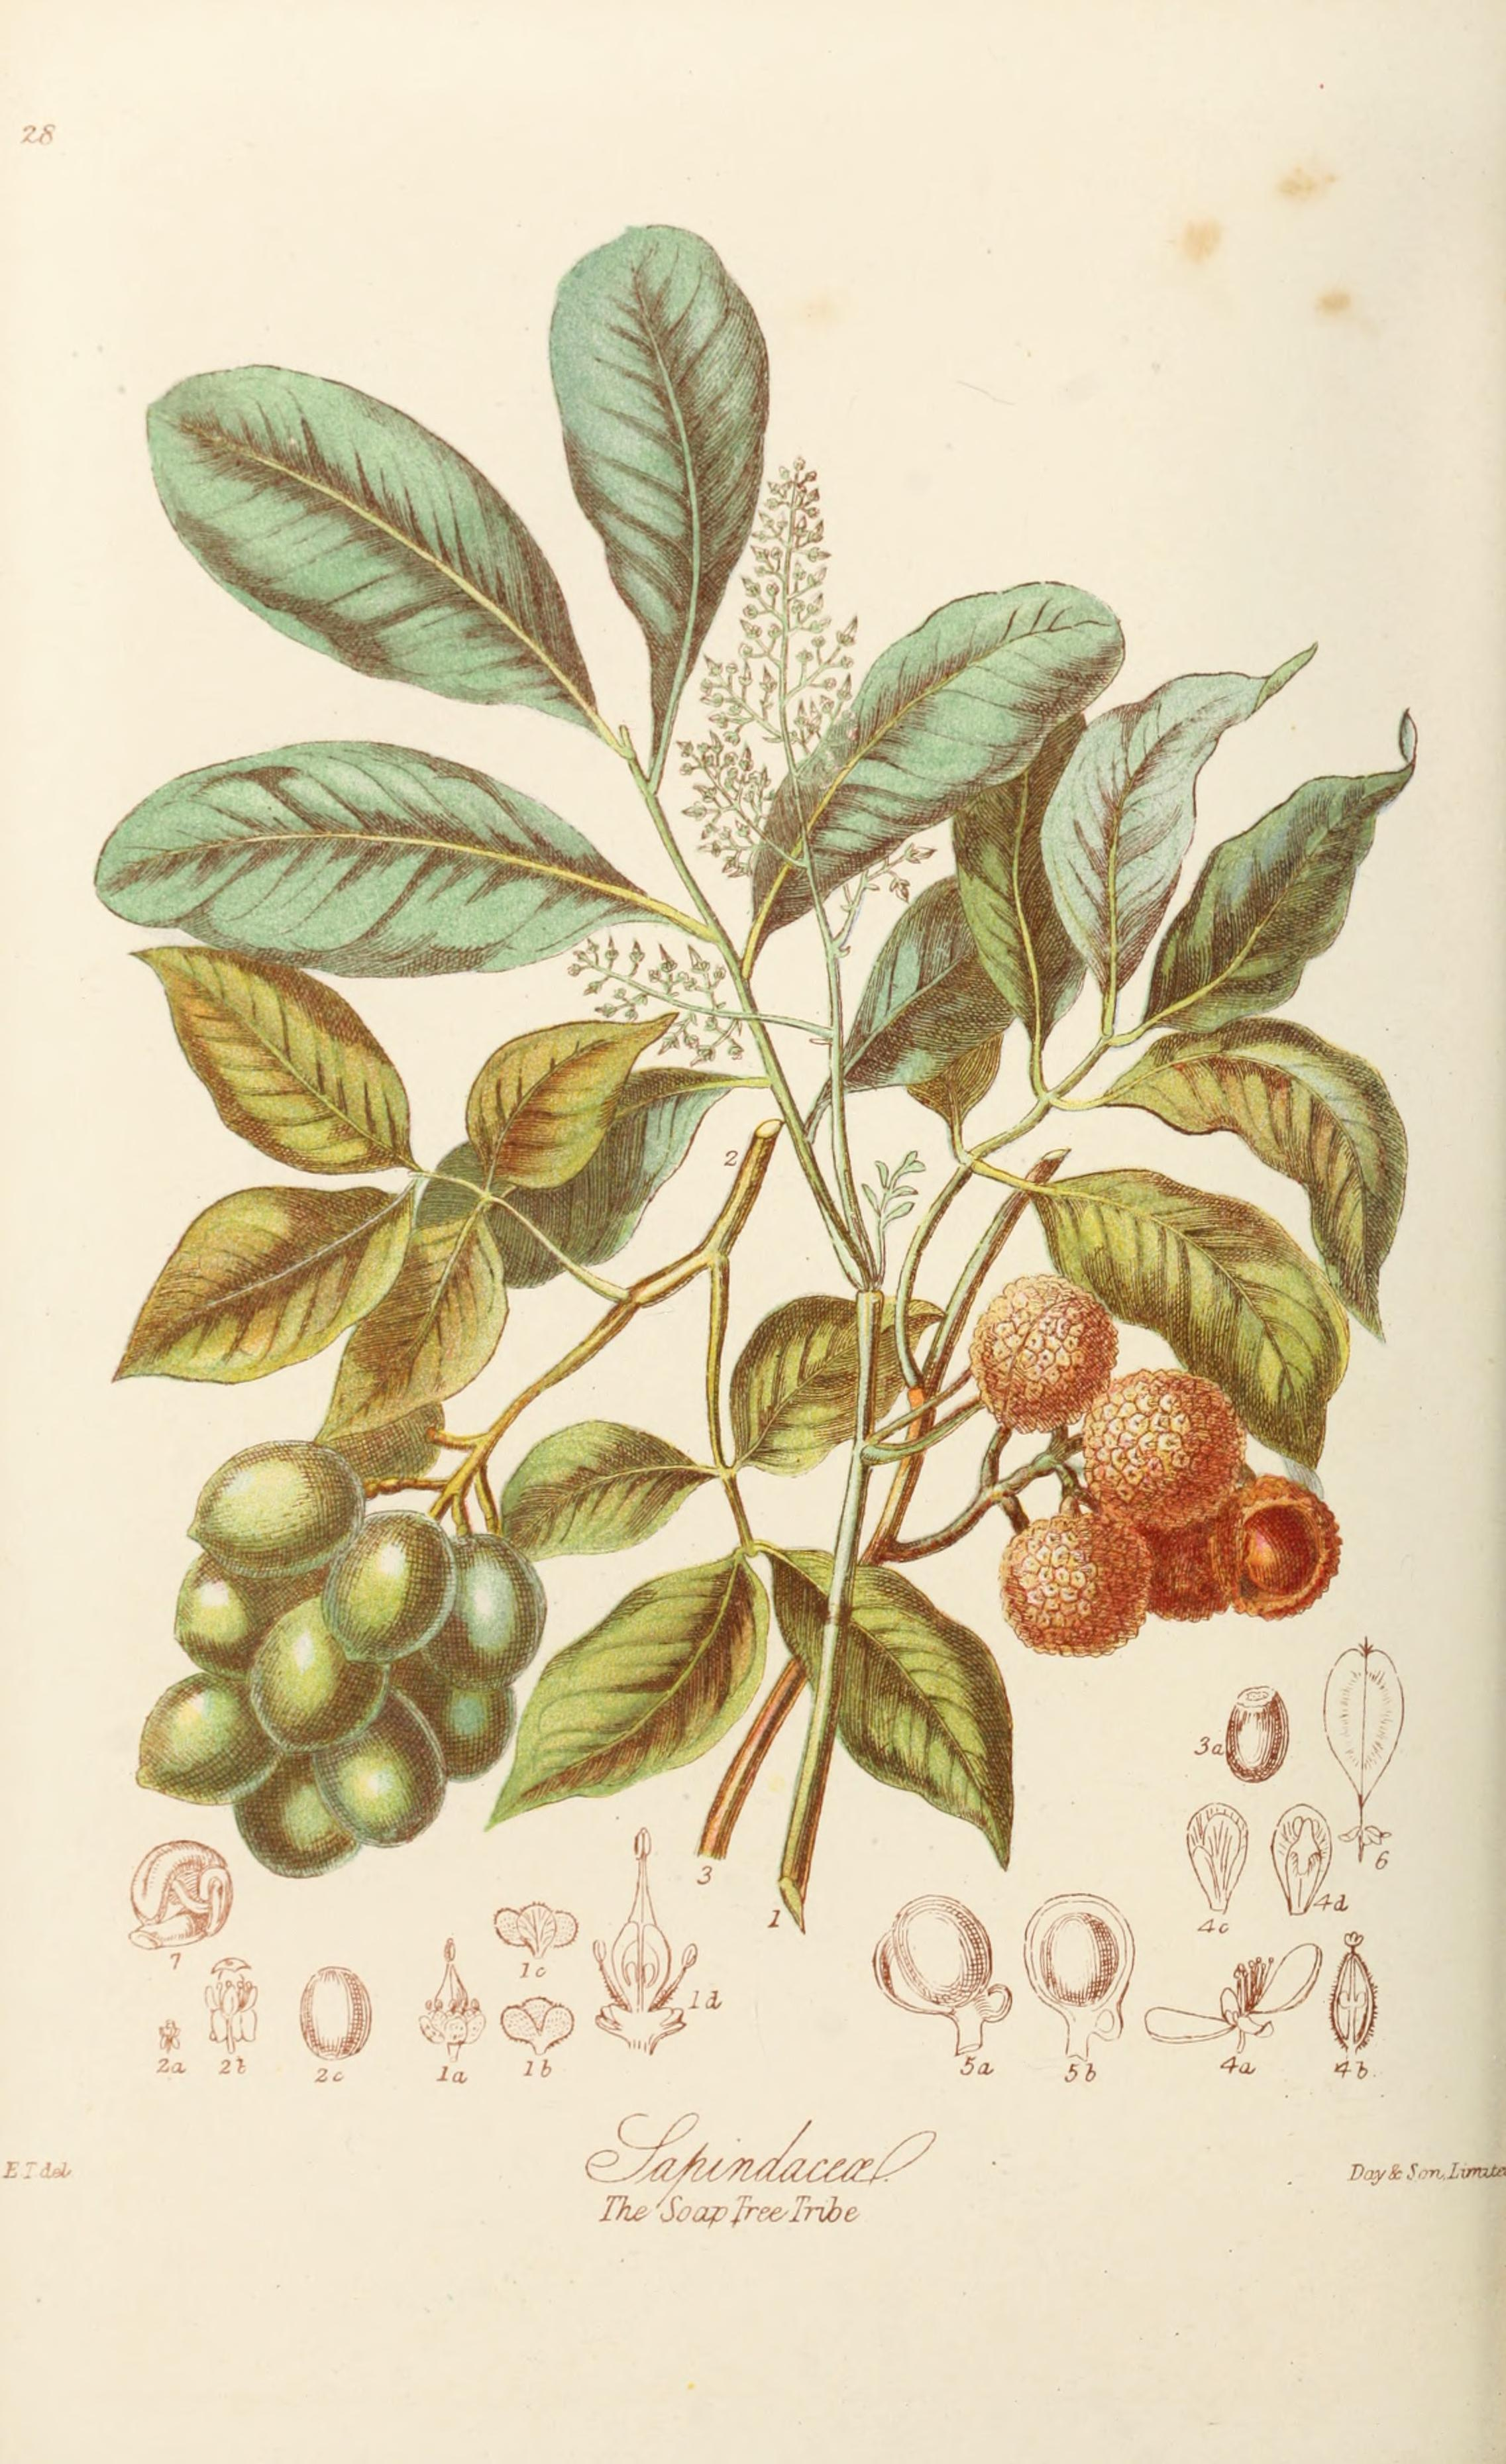 'The Soap Tree Tribe,' illustration from  Illustrations of the Natural Orders of Plants with Groups and Descriptions  by  Elizabeth Twining. Published London, 1868. Image from the  Biodiversity Heritage Library .